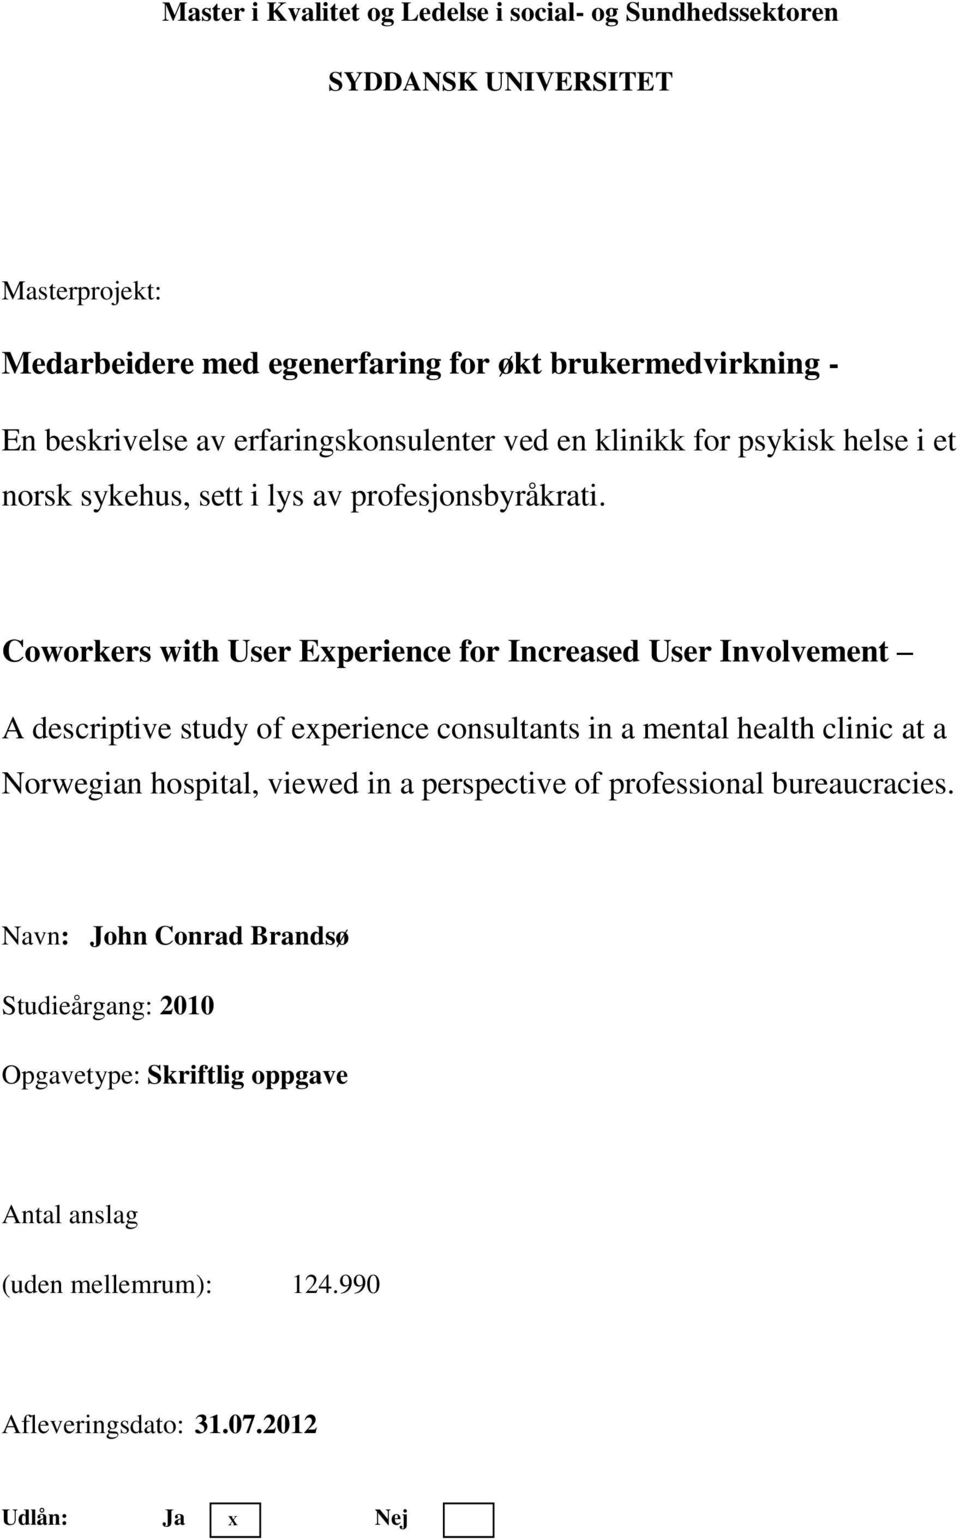 Coworkers with User Experience for Increased User Involvement A descriptive study of experience consultants in a mental health clinic at a Norwegian hospital,